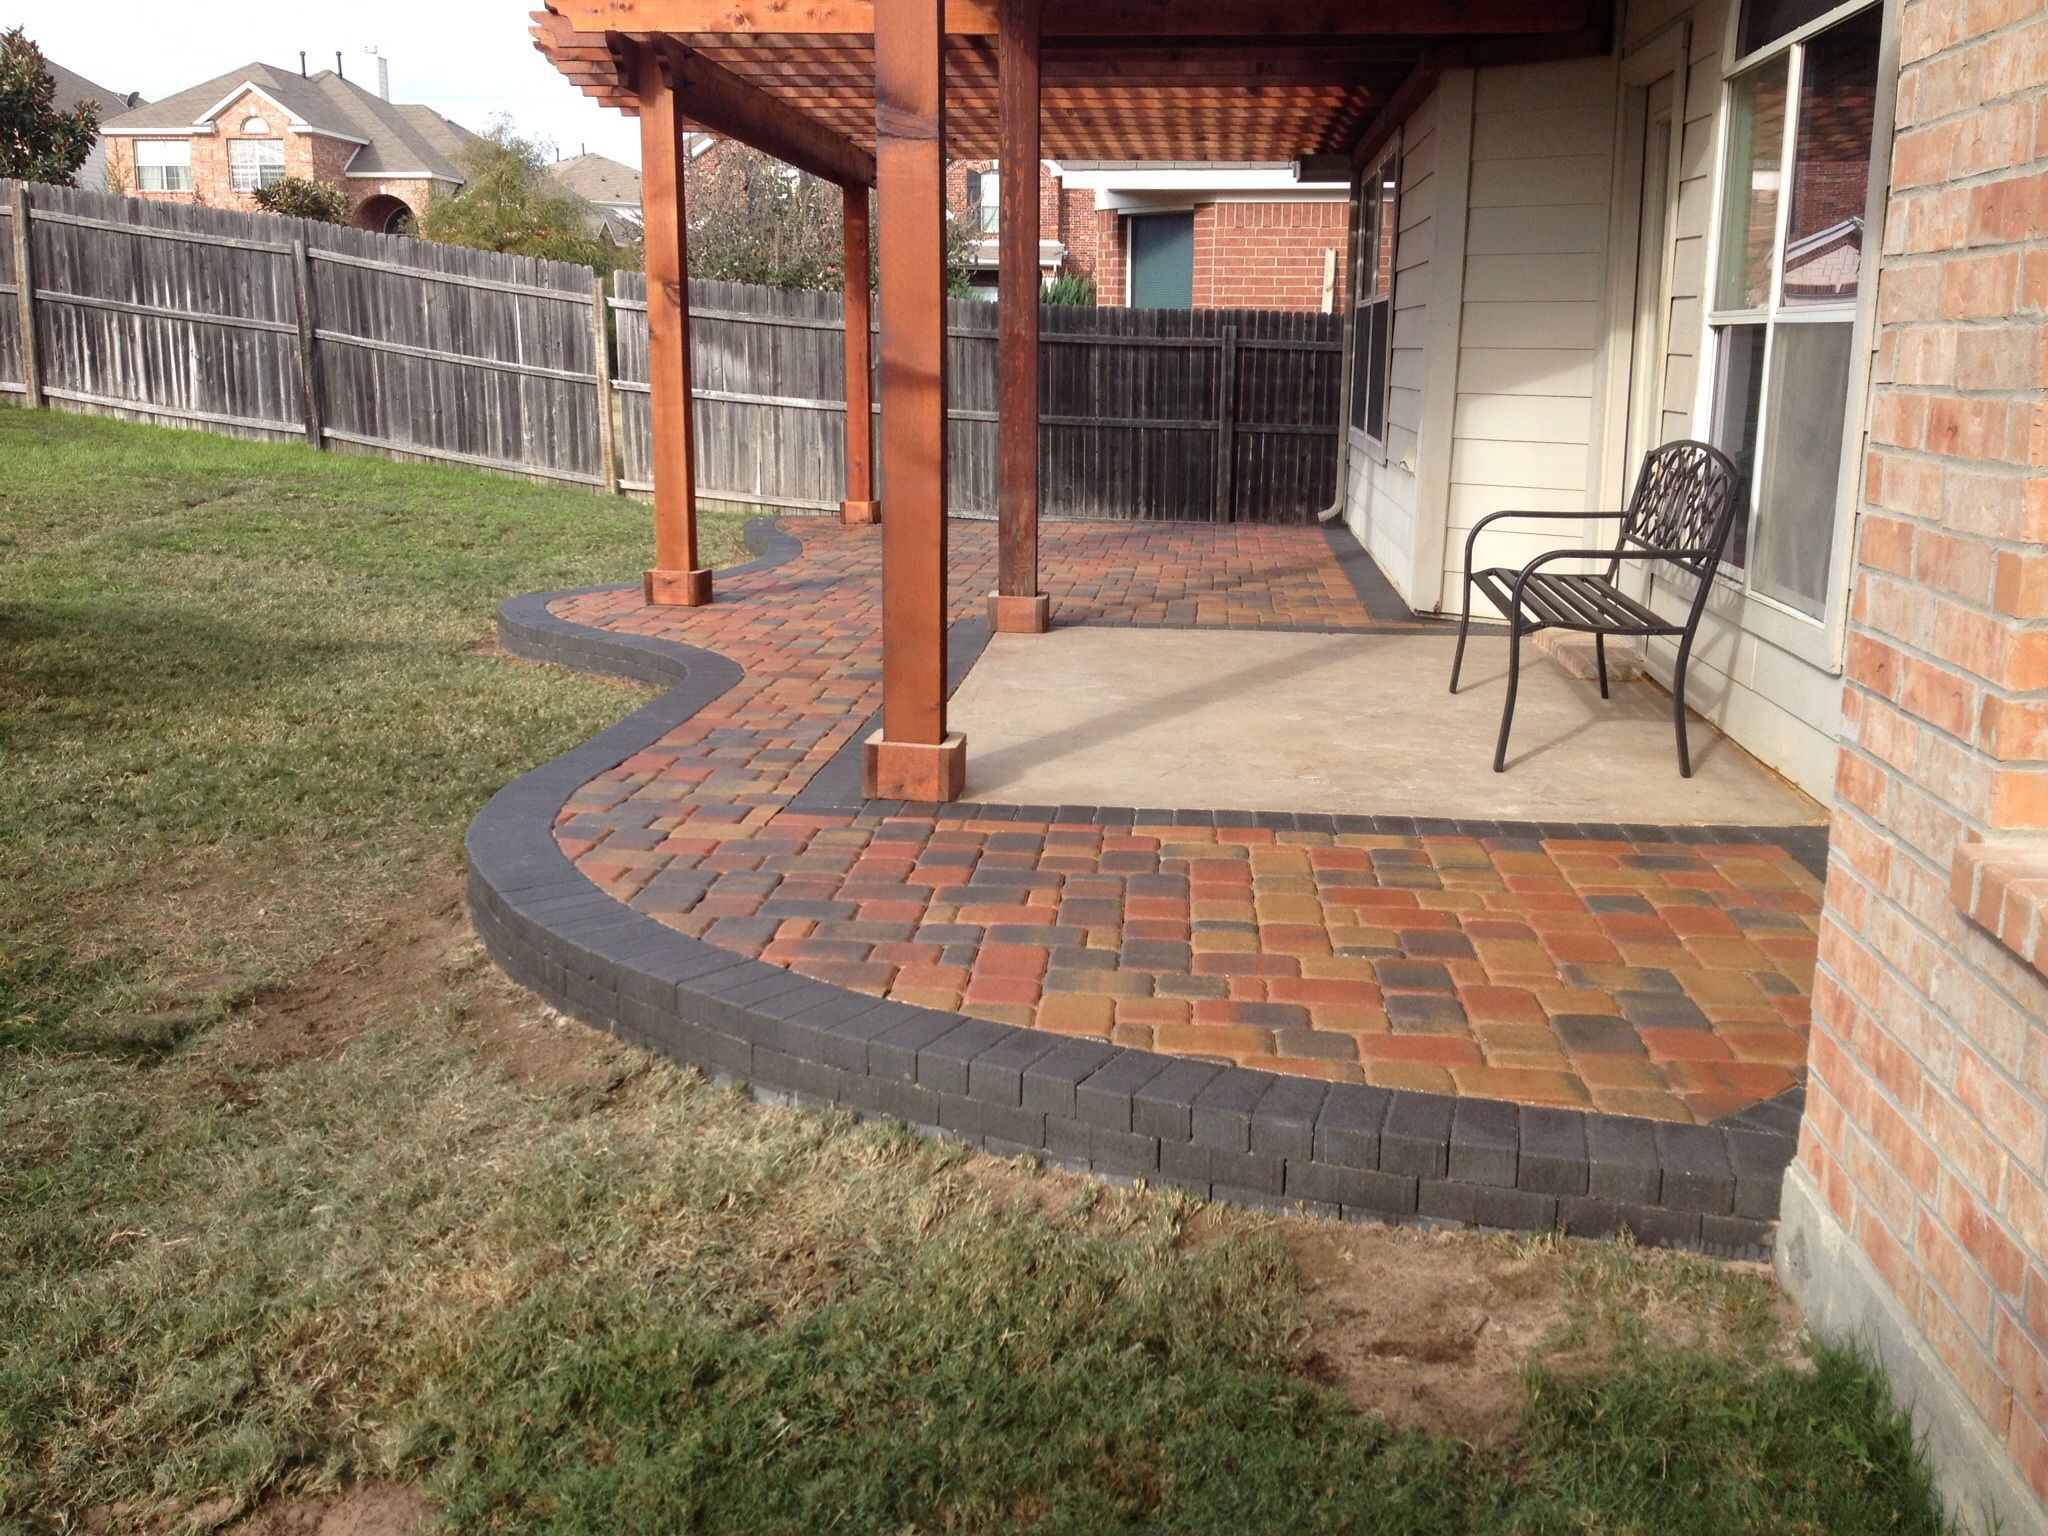 Multicolored Paver Patio Installed Around An Existing